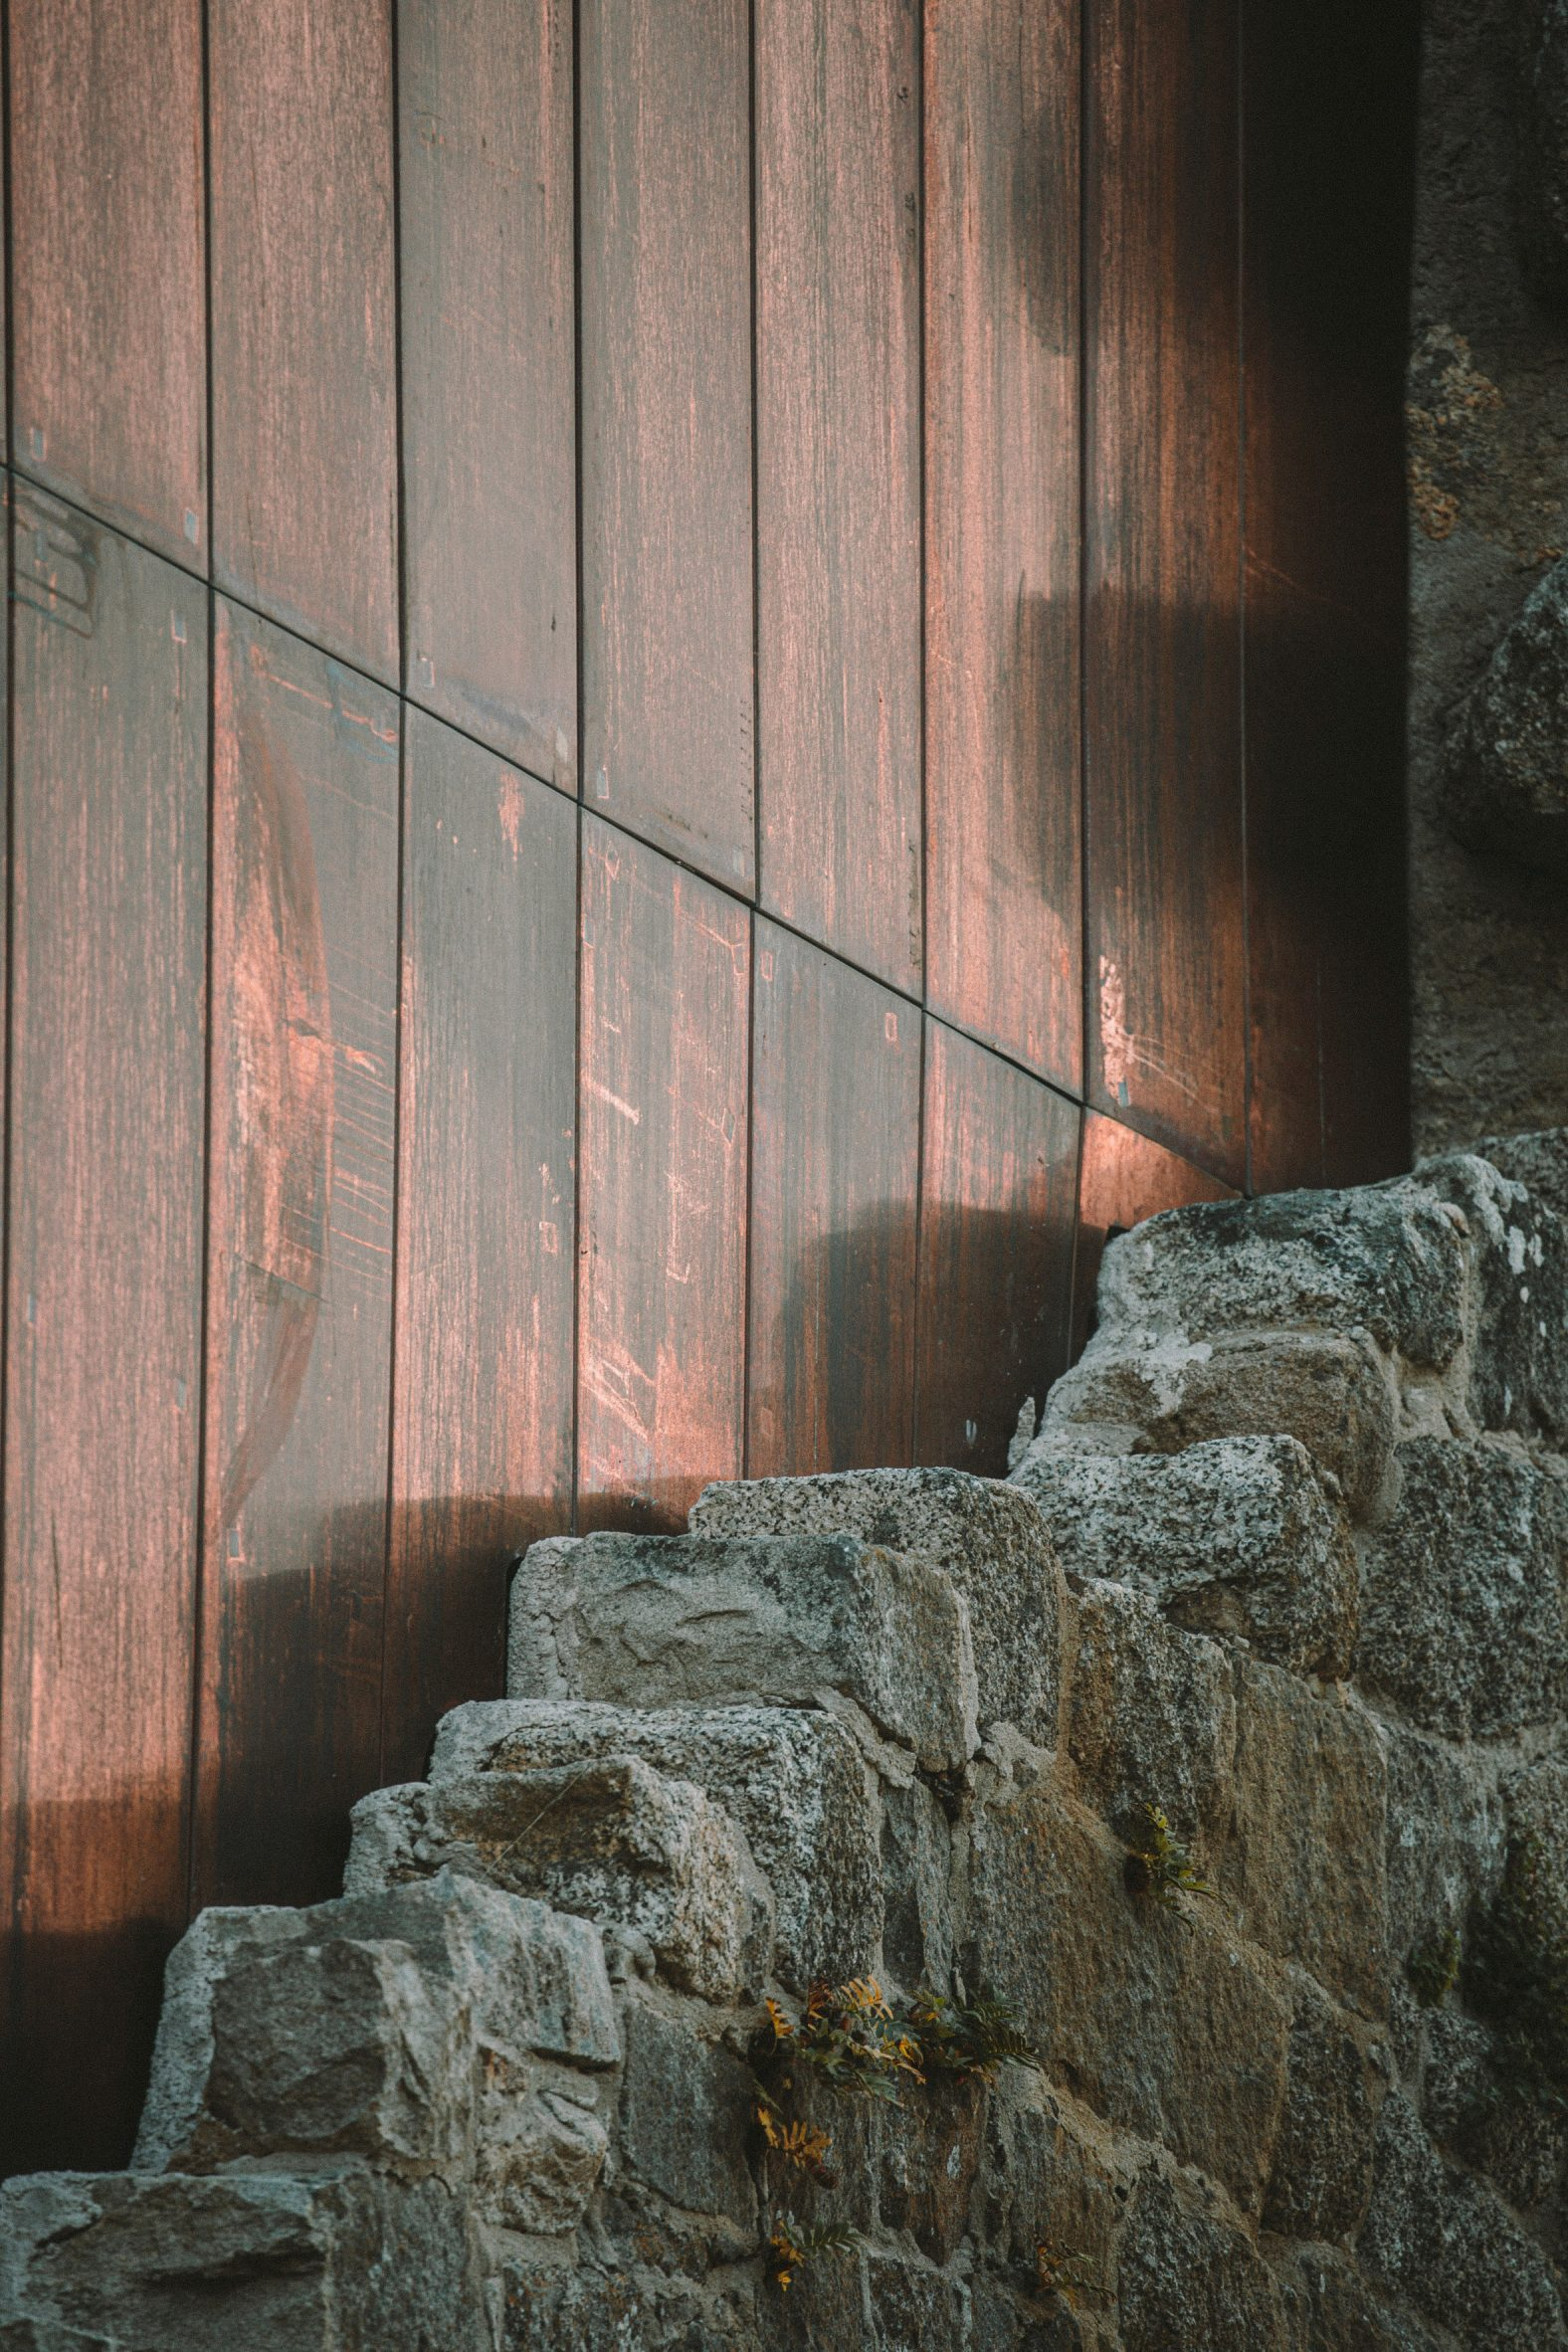 Copper sheets were fitted behind the stone walls